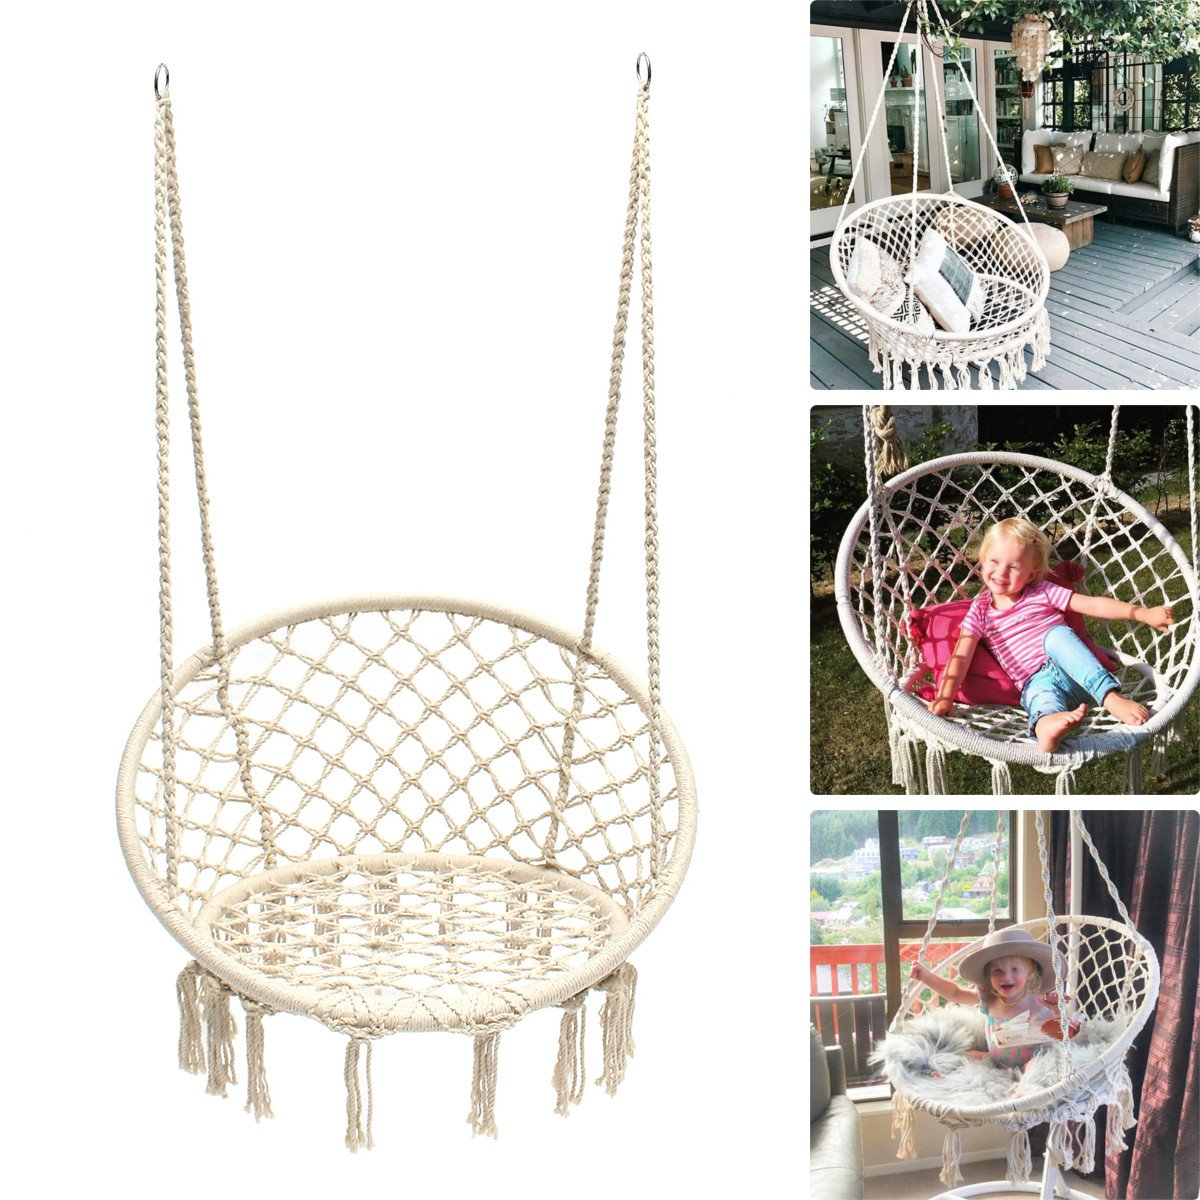 Round Hammock Chair Outdoor Indoor Dormitory Bedroom Yard For Child Adult Swinging Hanging Single Safety Chair Hammock